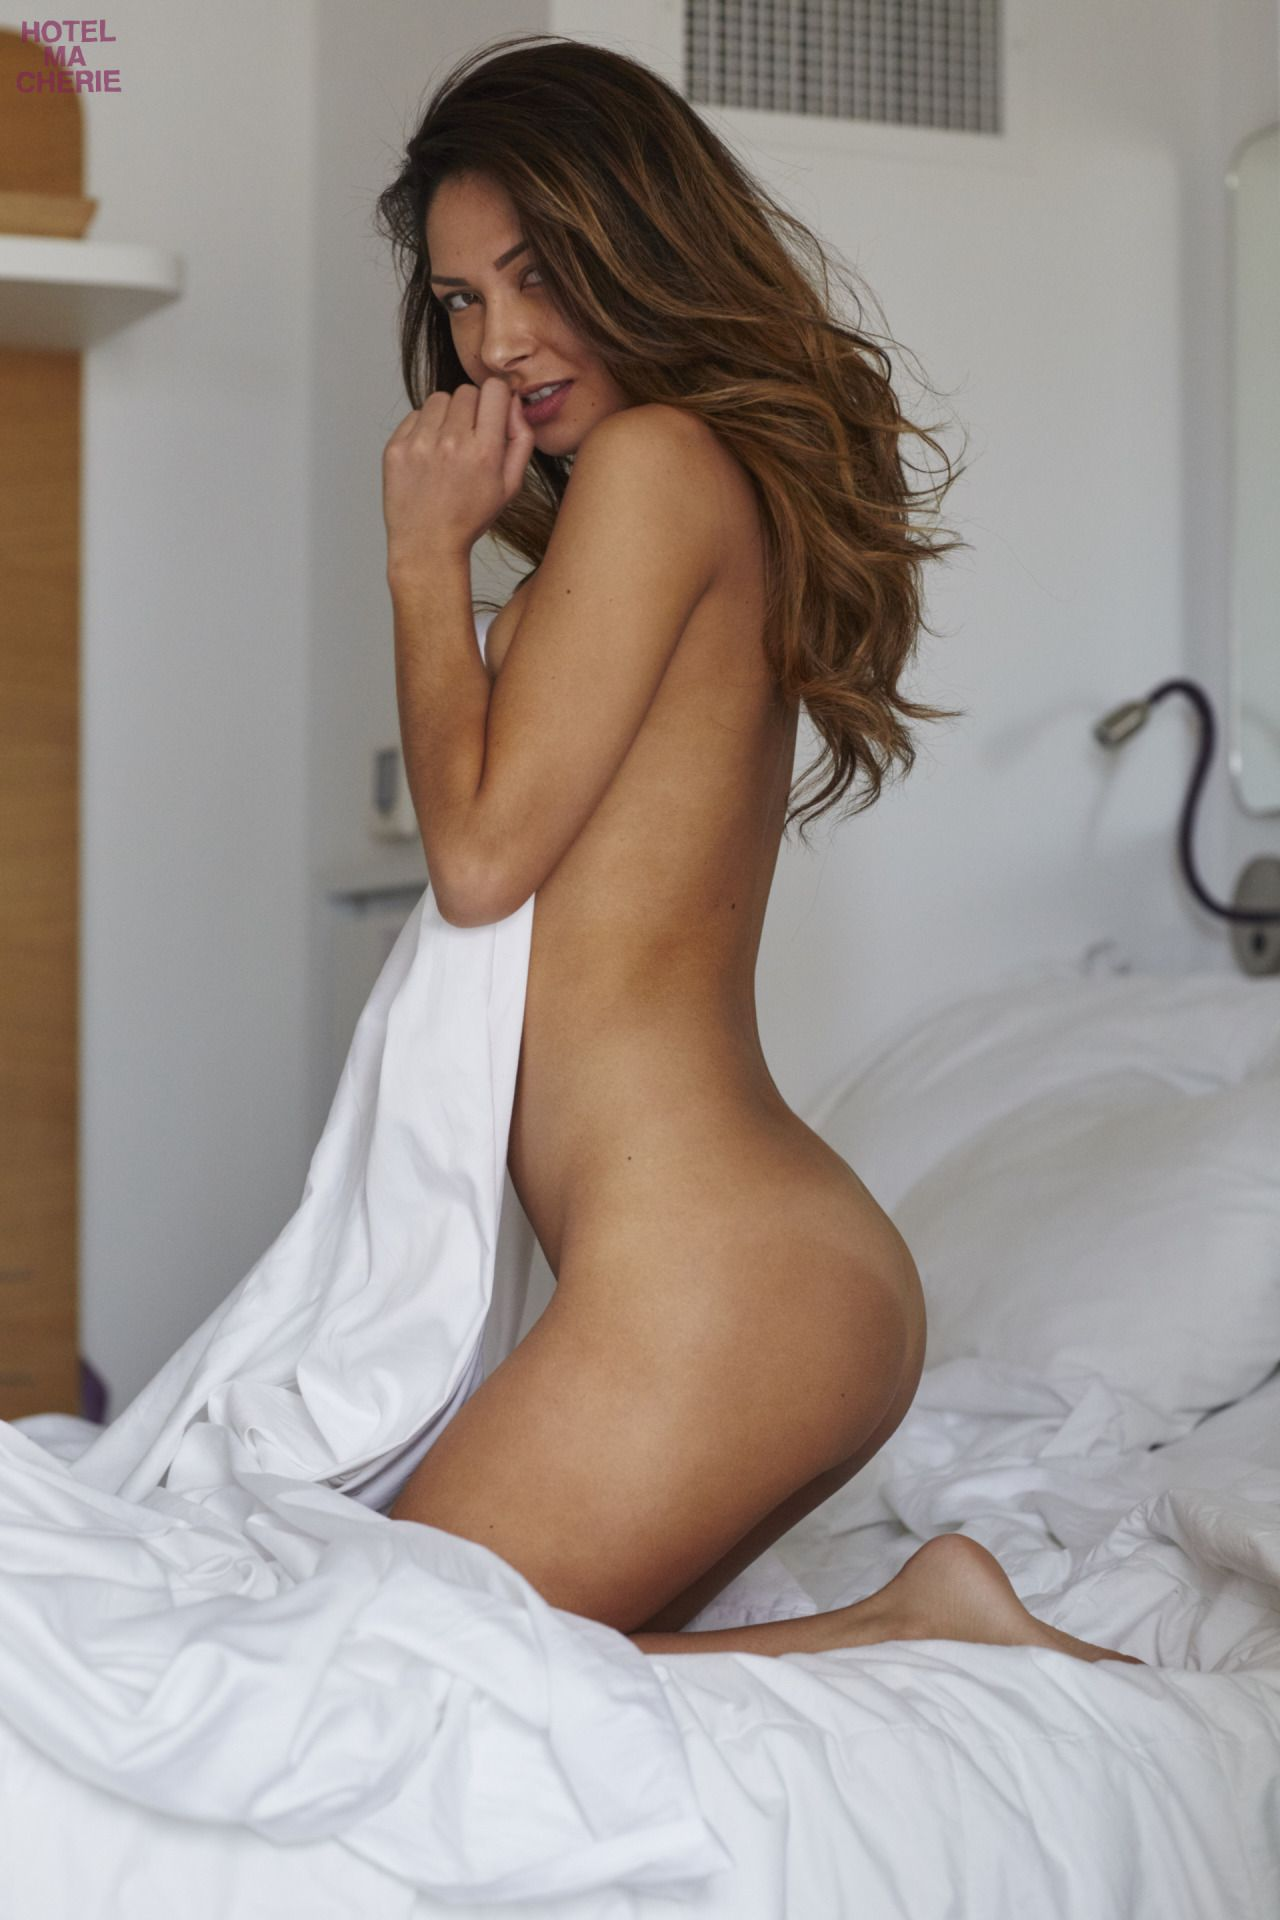 Nude Photos Of Kat Kelley